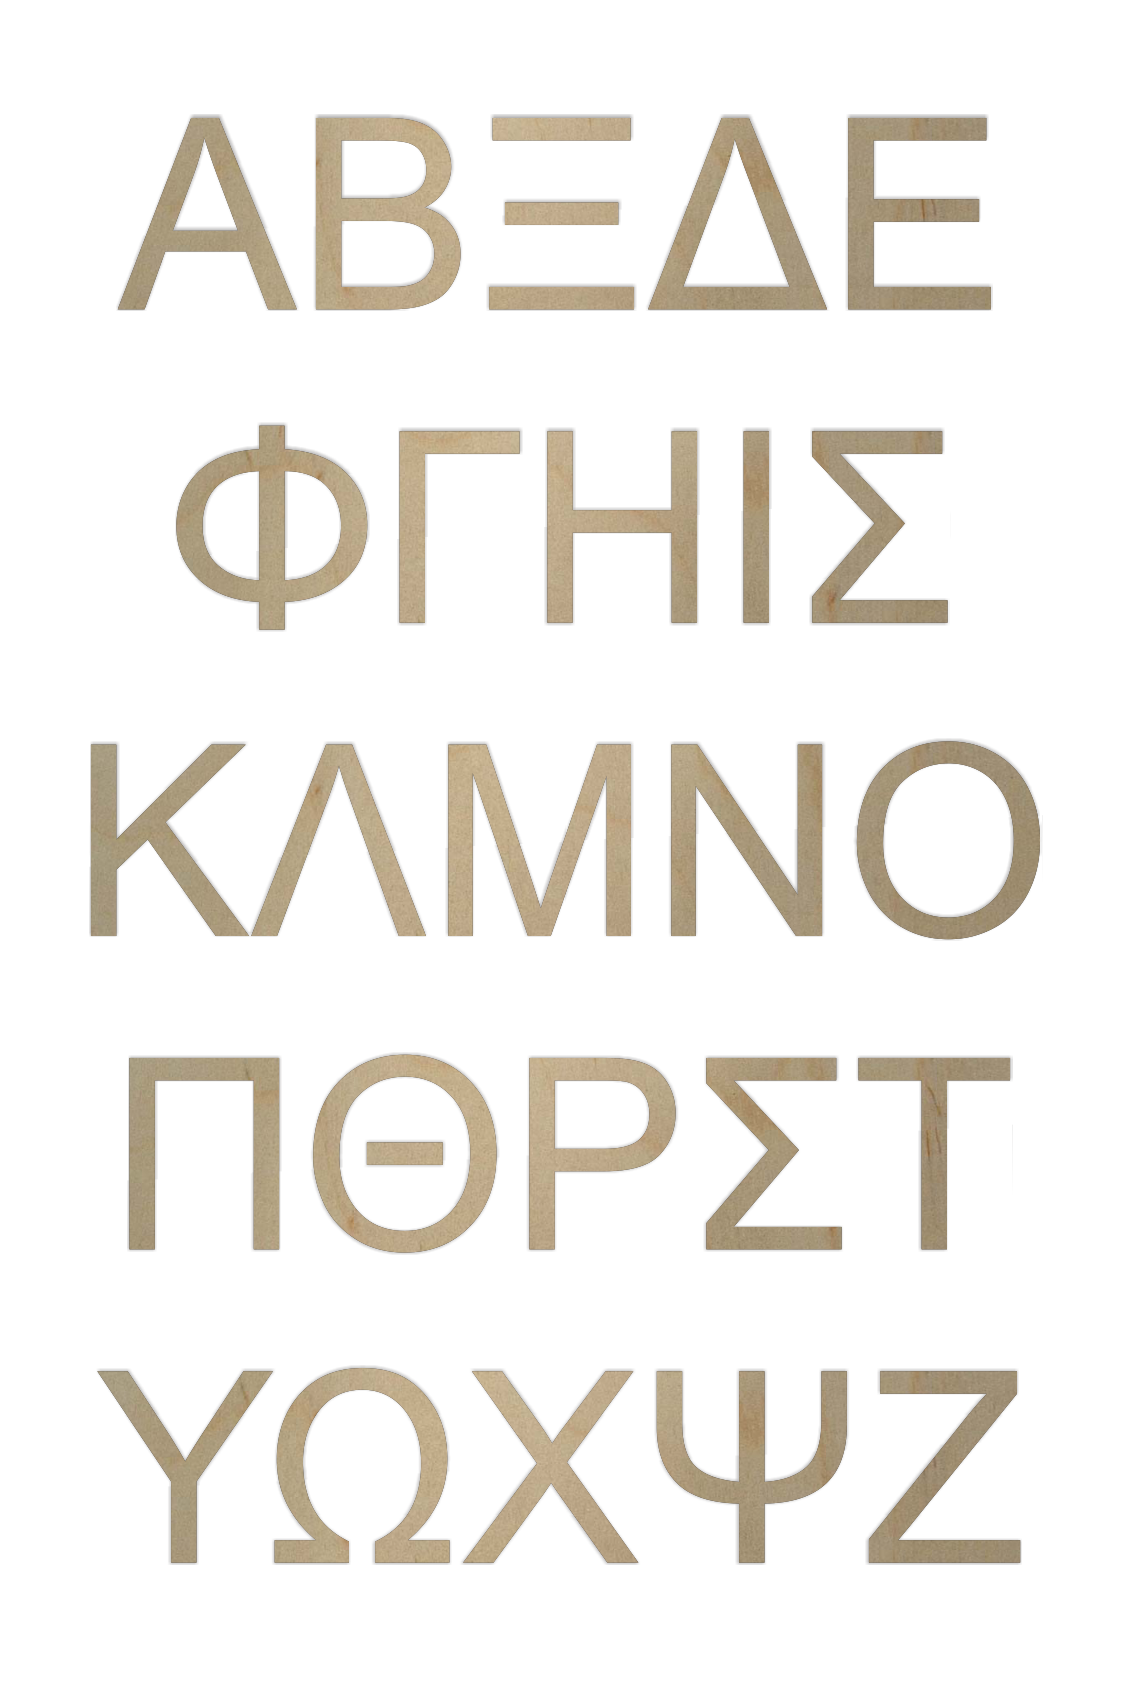 wooden greek letters arial font by woodenletterscom